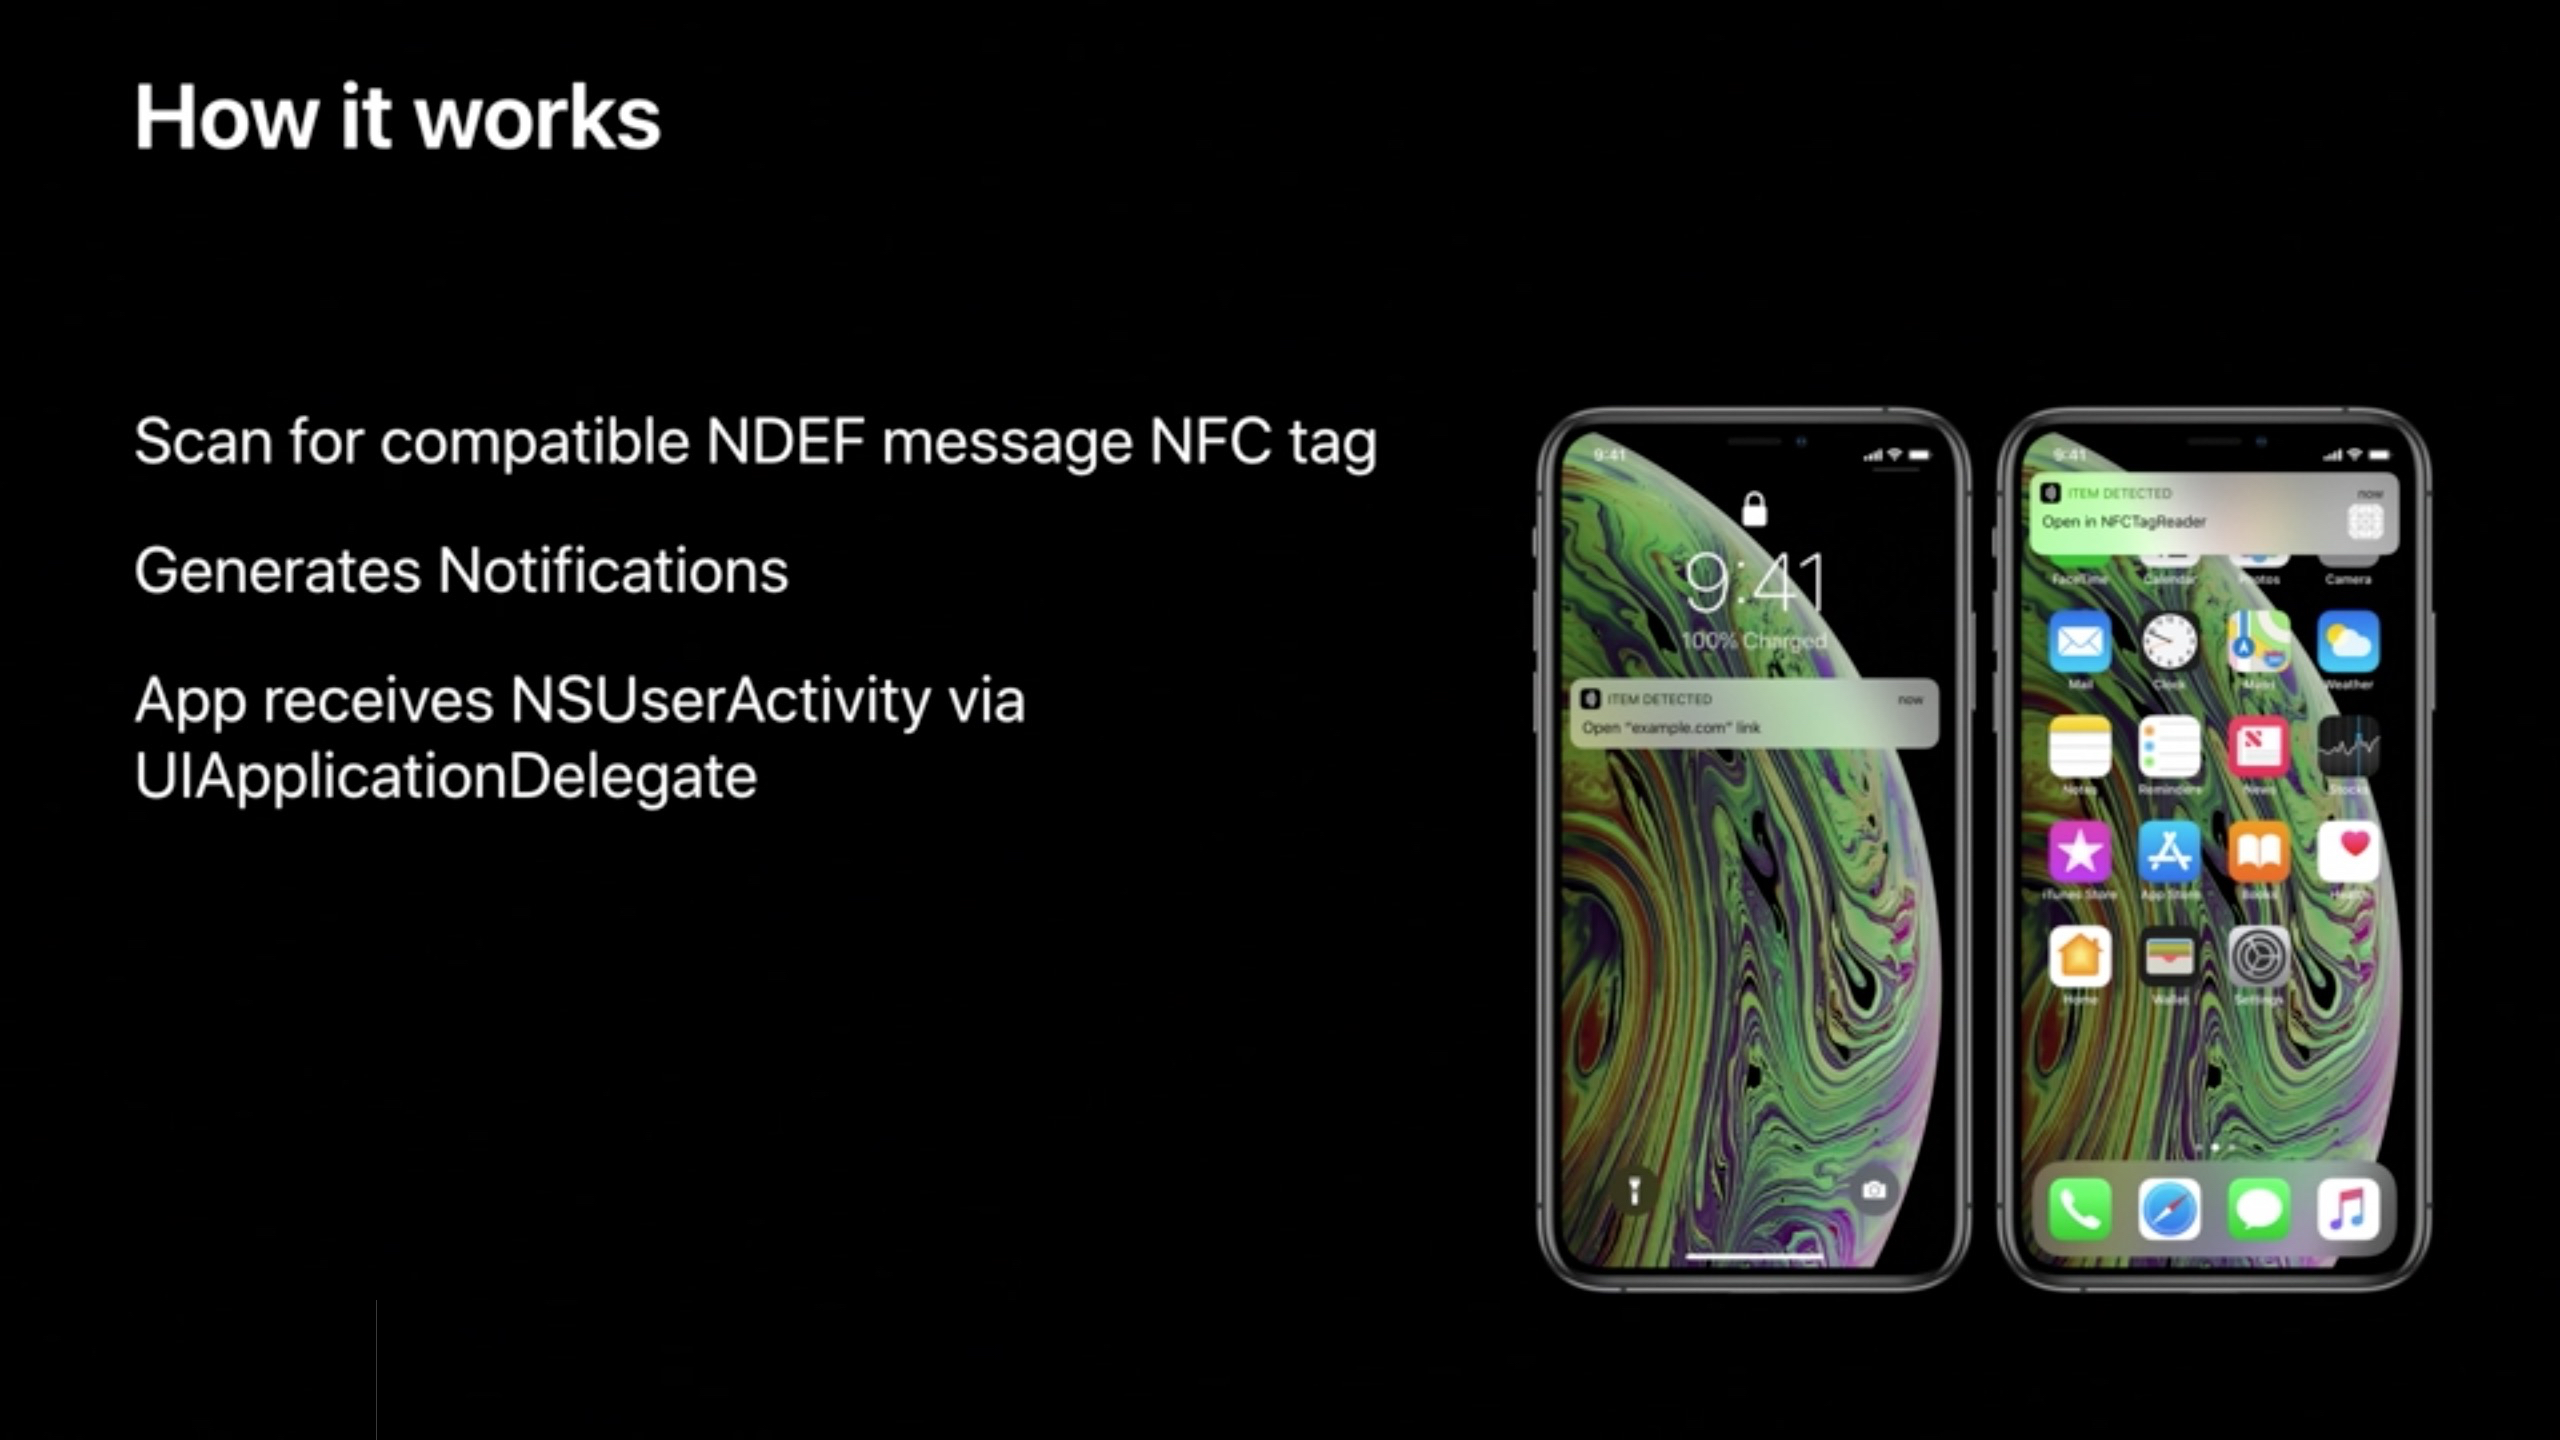 iPhone Xs and iPhone XR can read NFC tags without having to launch an app